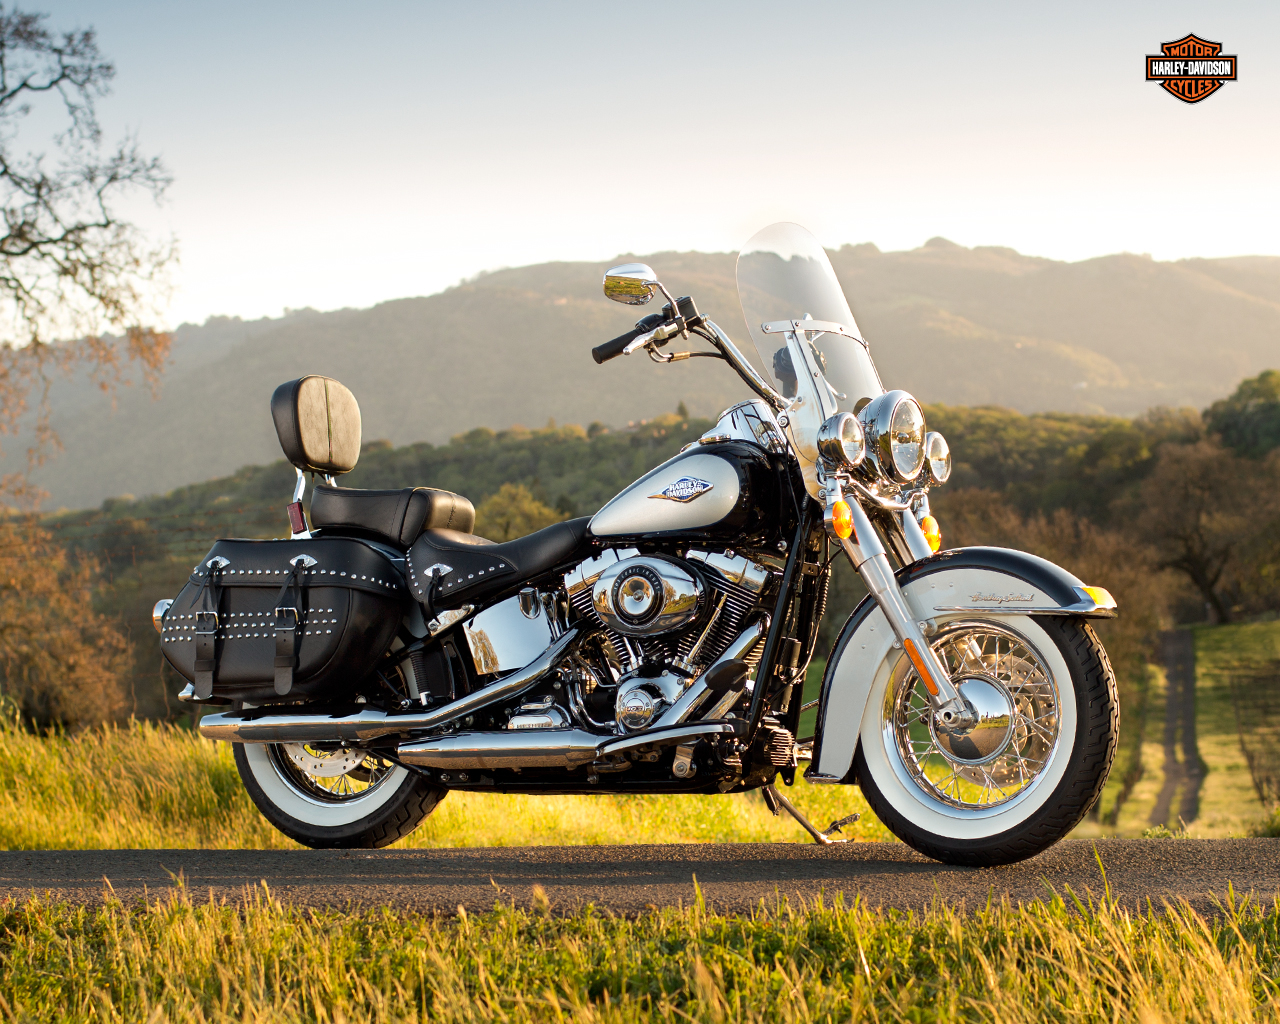 Lucky BAM Winner To Take Home New 2013 Softail Harley-Davidson